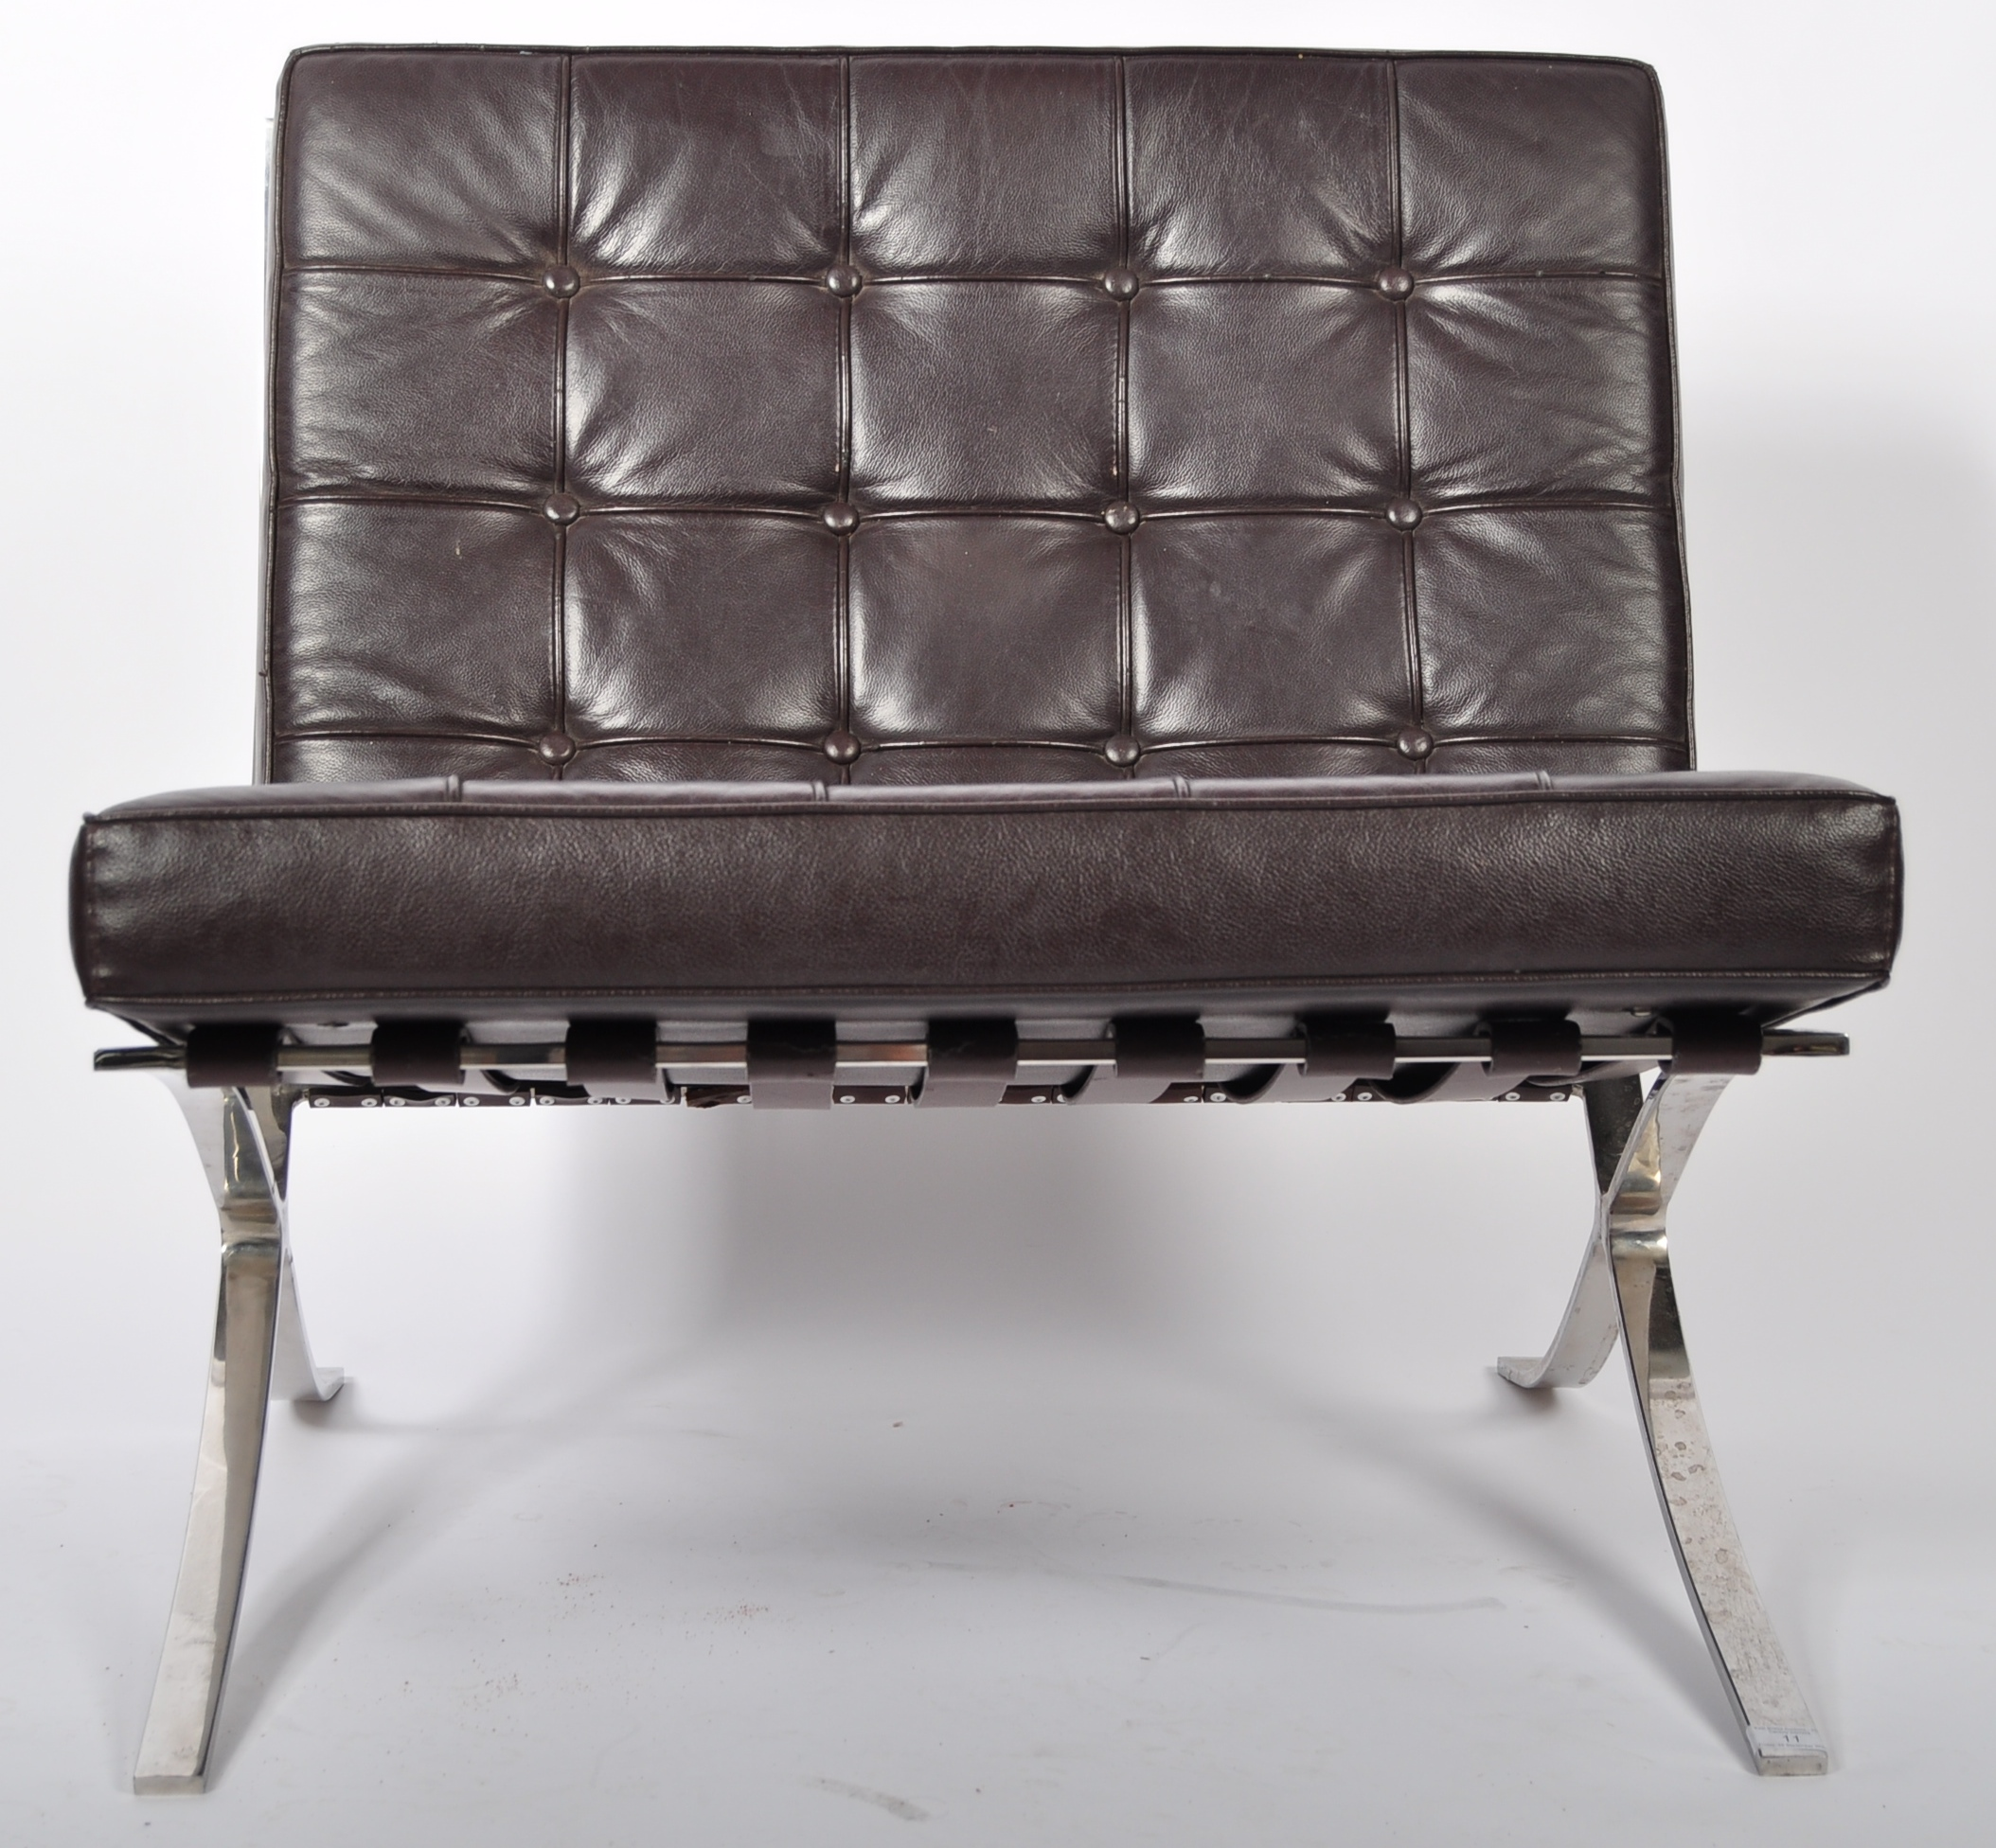 CHROME X-FRAME BARCELONA CHAIR IN BROWN LEATHER - Image 2 of 6